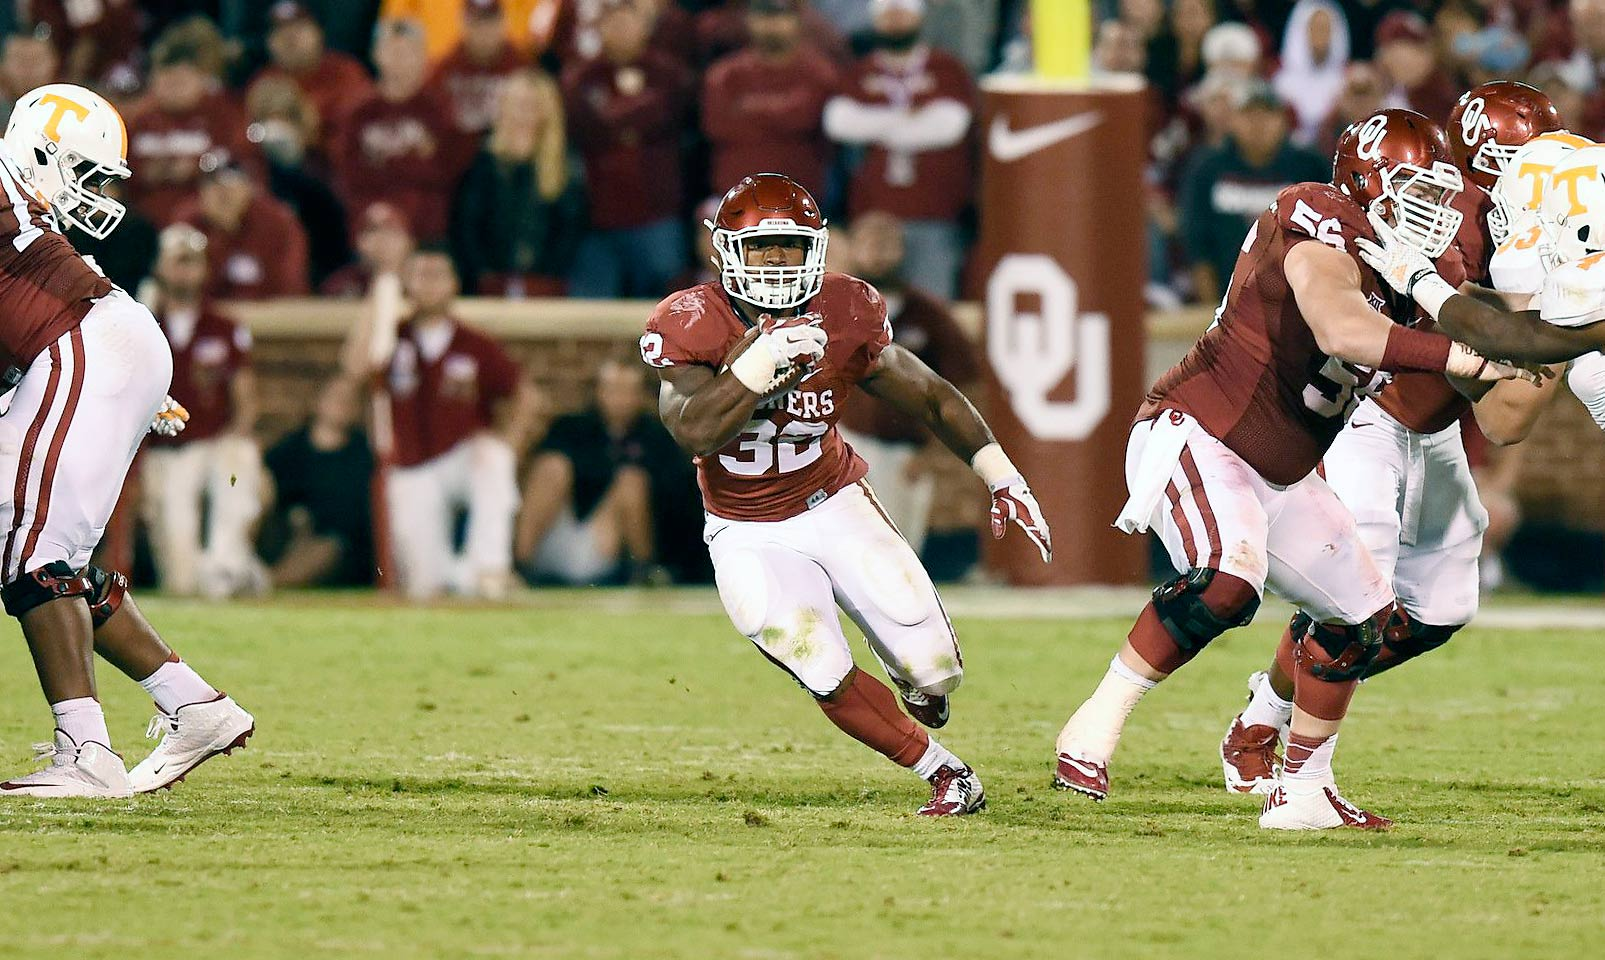 Perine hit the ground running as a true freshman in Norman. He carried the ball 263 times for over 1,700 yards and 21 touchdowns. The more he was trusted with ball, the more gaudy the numbers Perine posted, including a 427-yard, five-touchdown rushing performance against Kansas. That set the FBS record for rushing yards in a game.